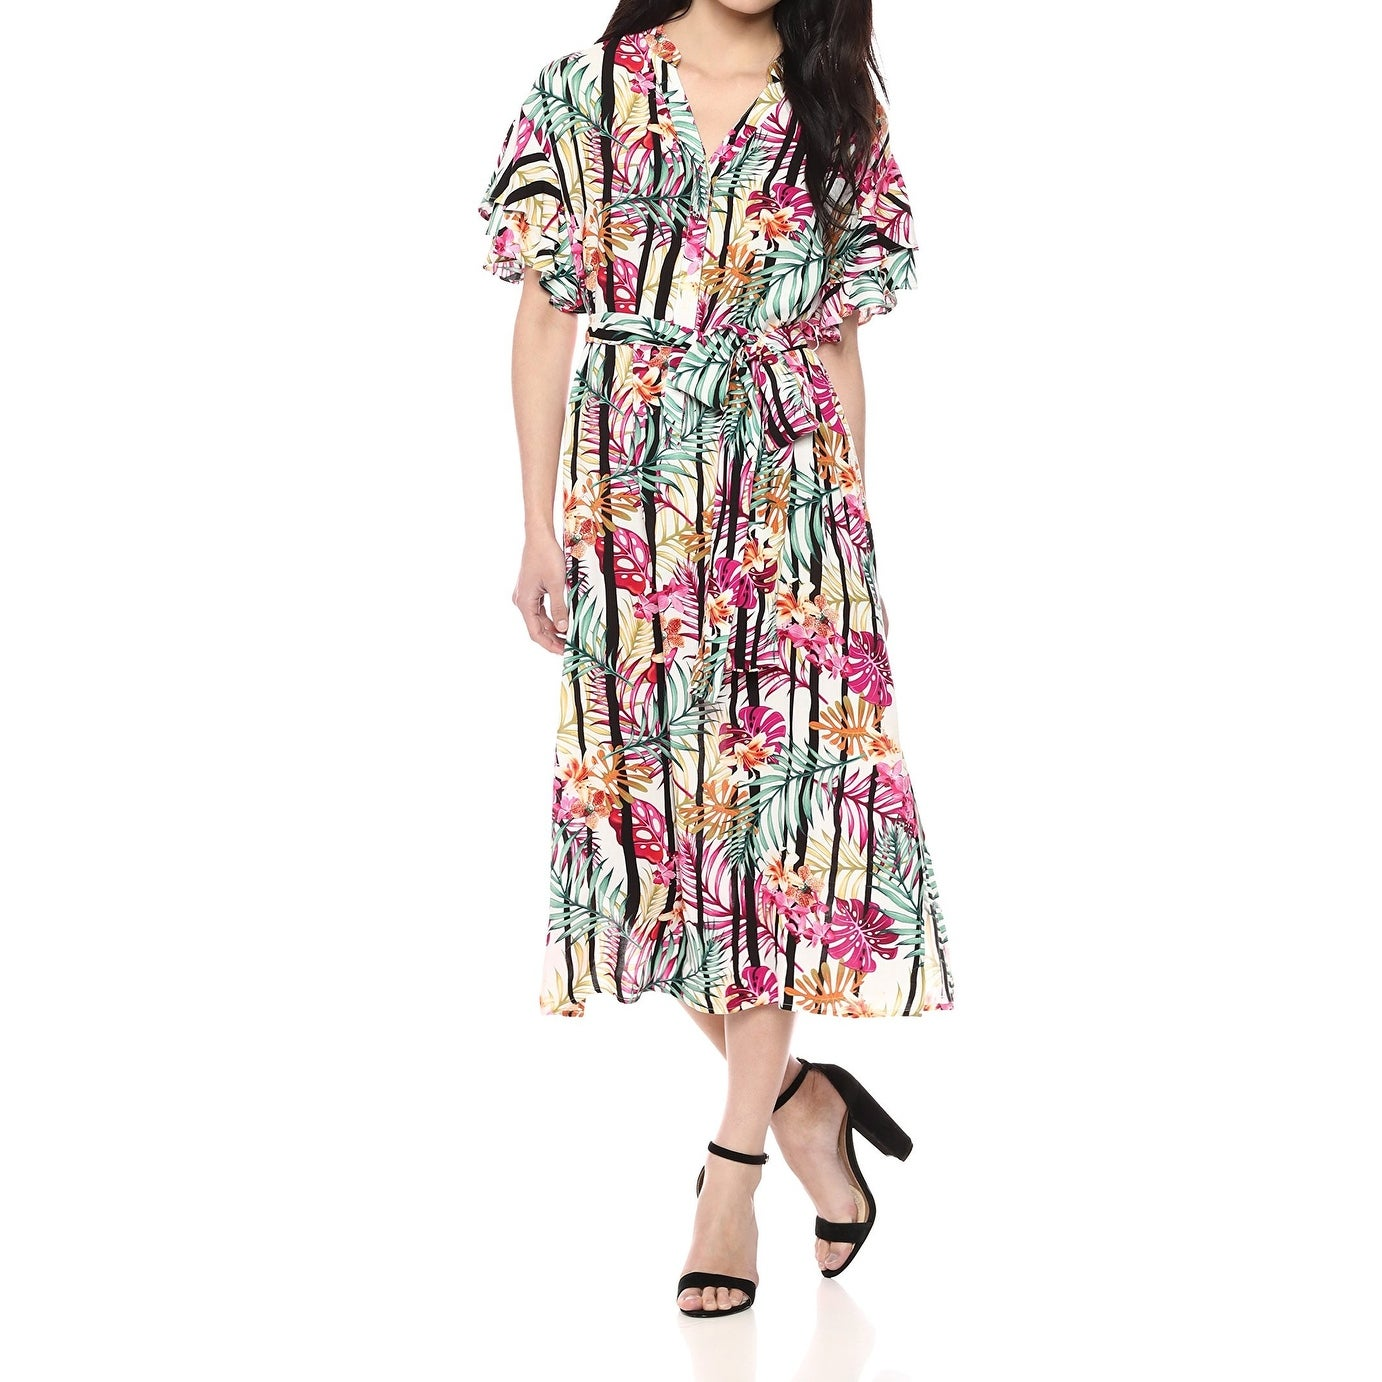 8ae5b597dca Nine West Dresses | Find Great Women's Clothing Deals Shopping at ...